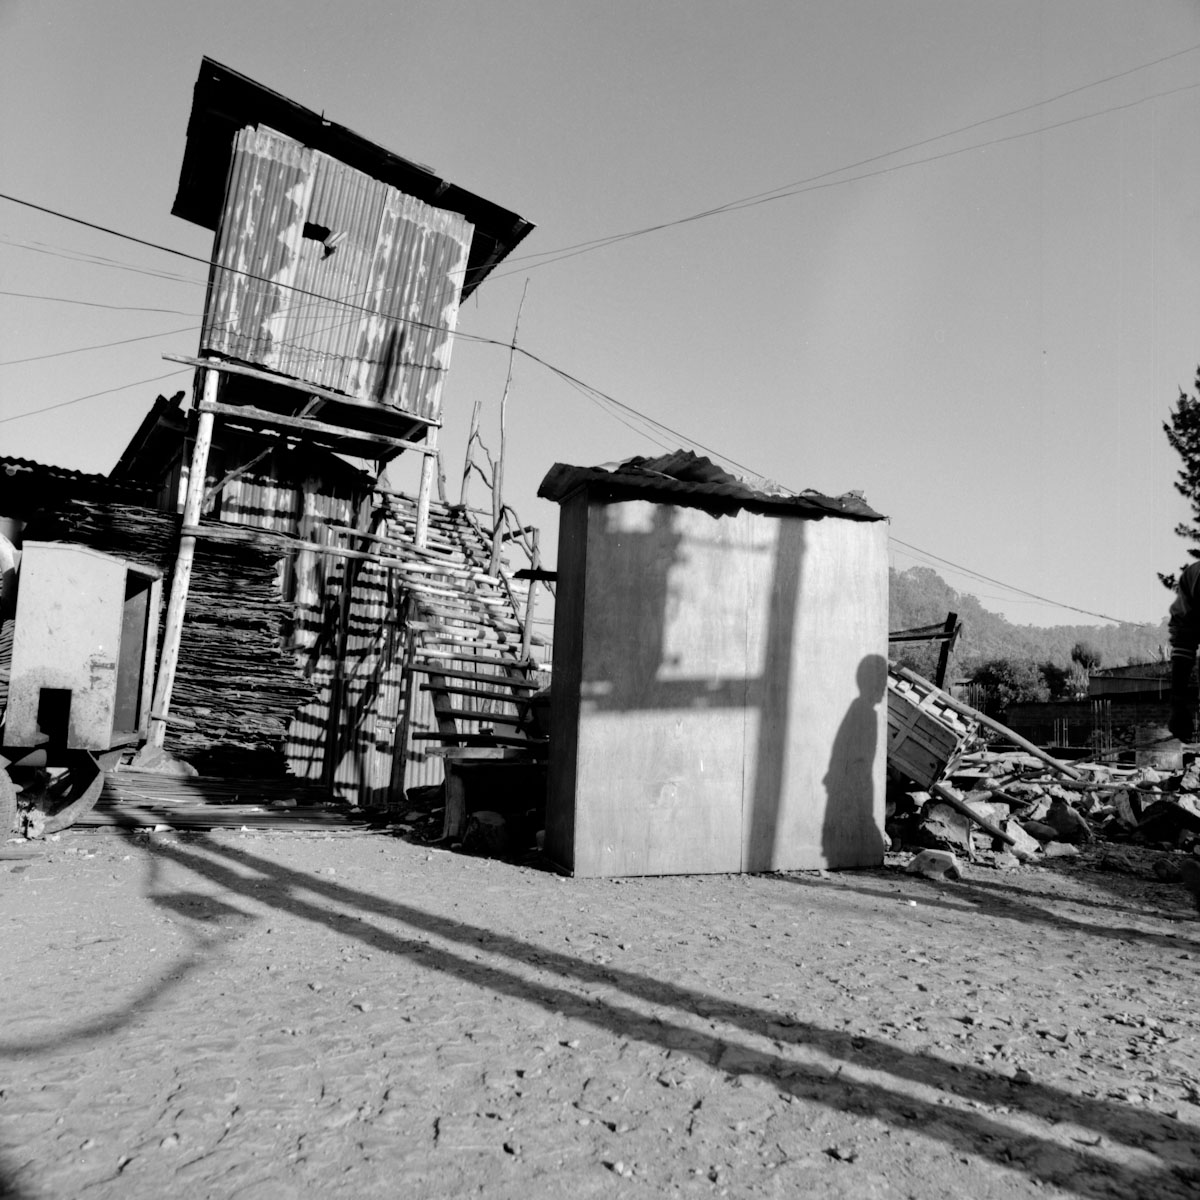 walking with Hasselblad - last day in Gondar, Ethiopia